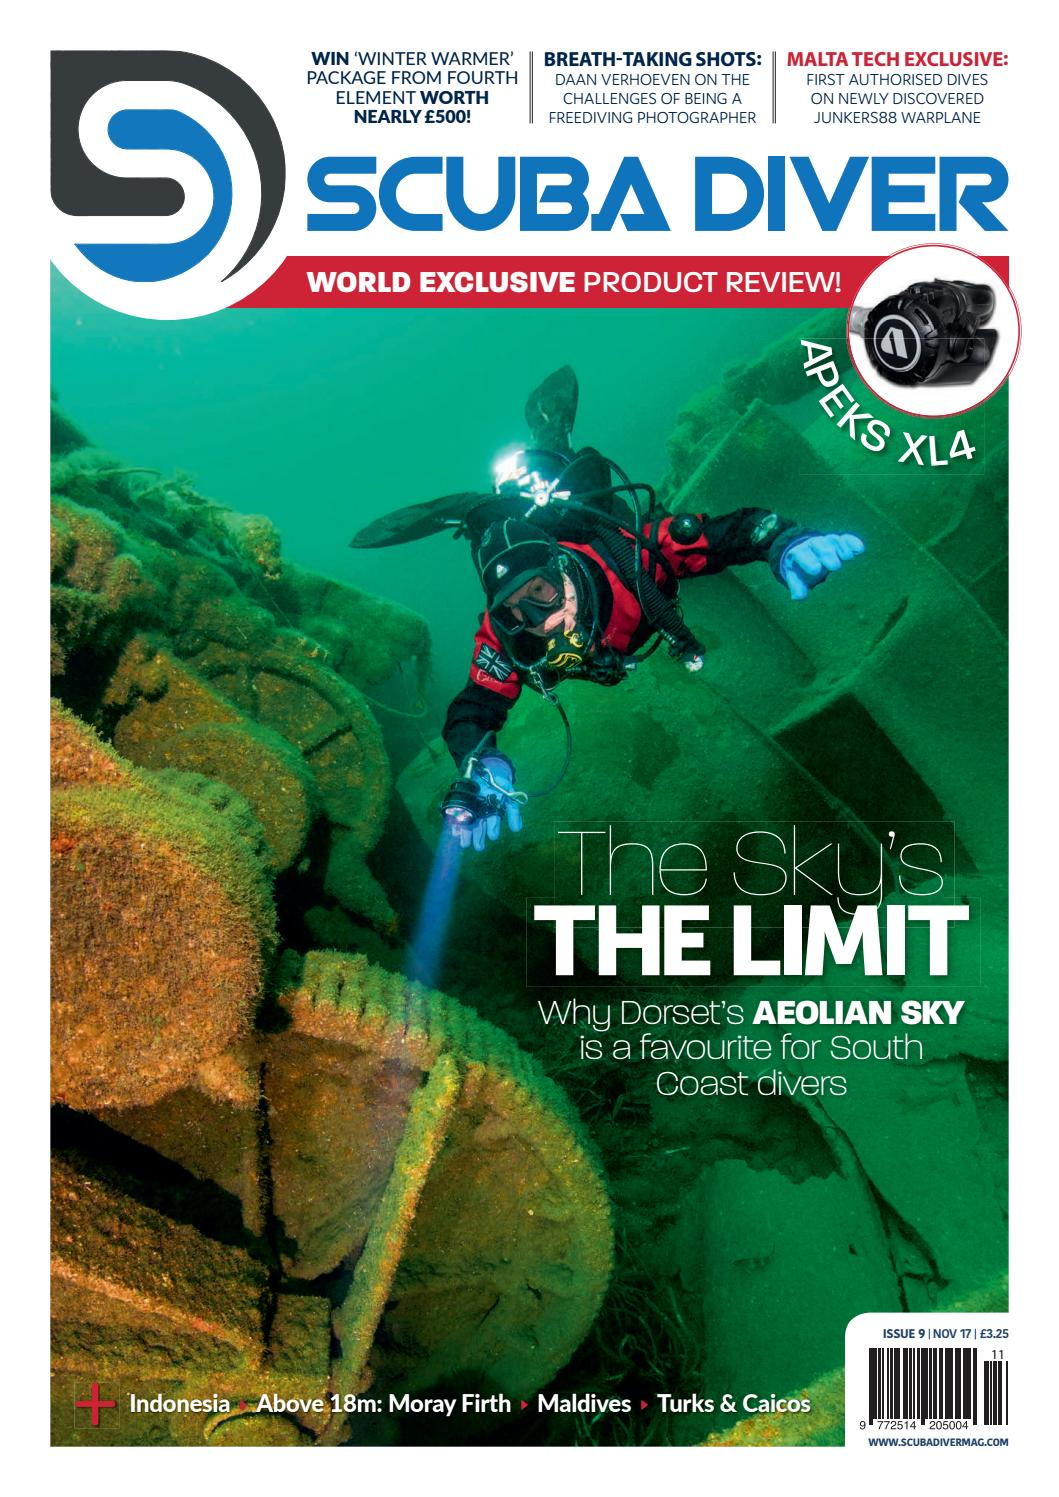 feabd55da770 Scuba Diver November 17 - Issue 9 by scubadivermag - issuu